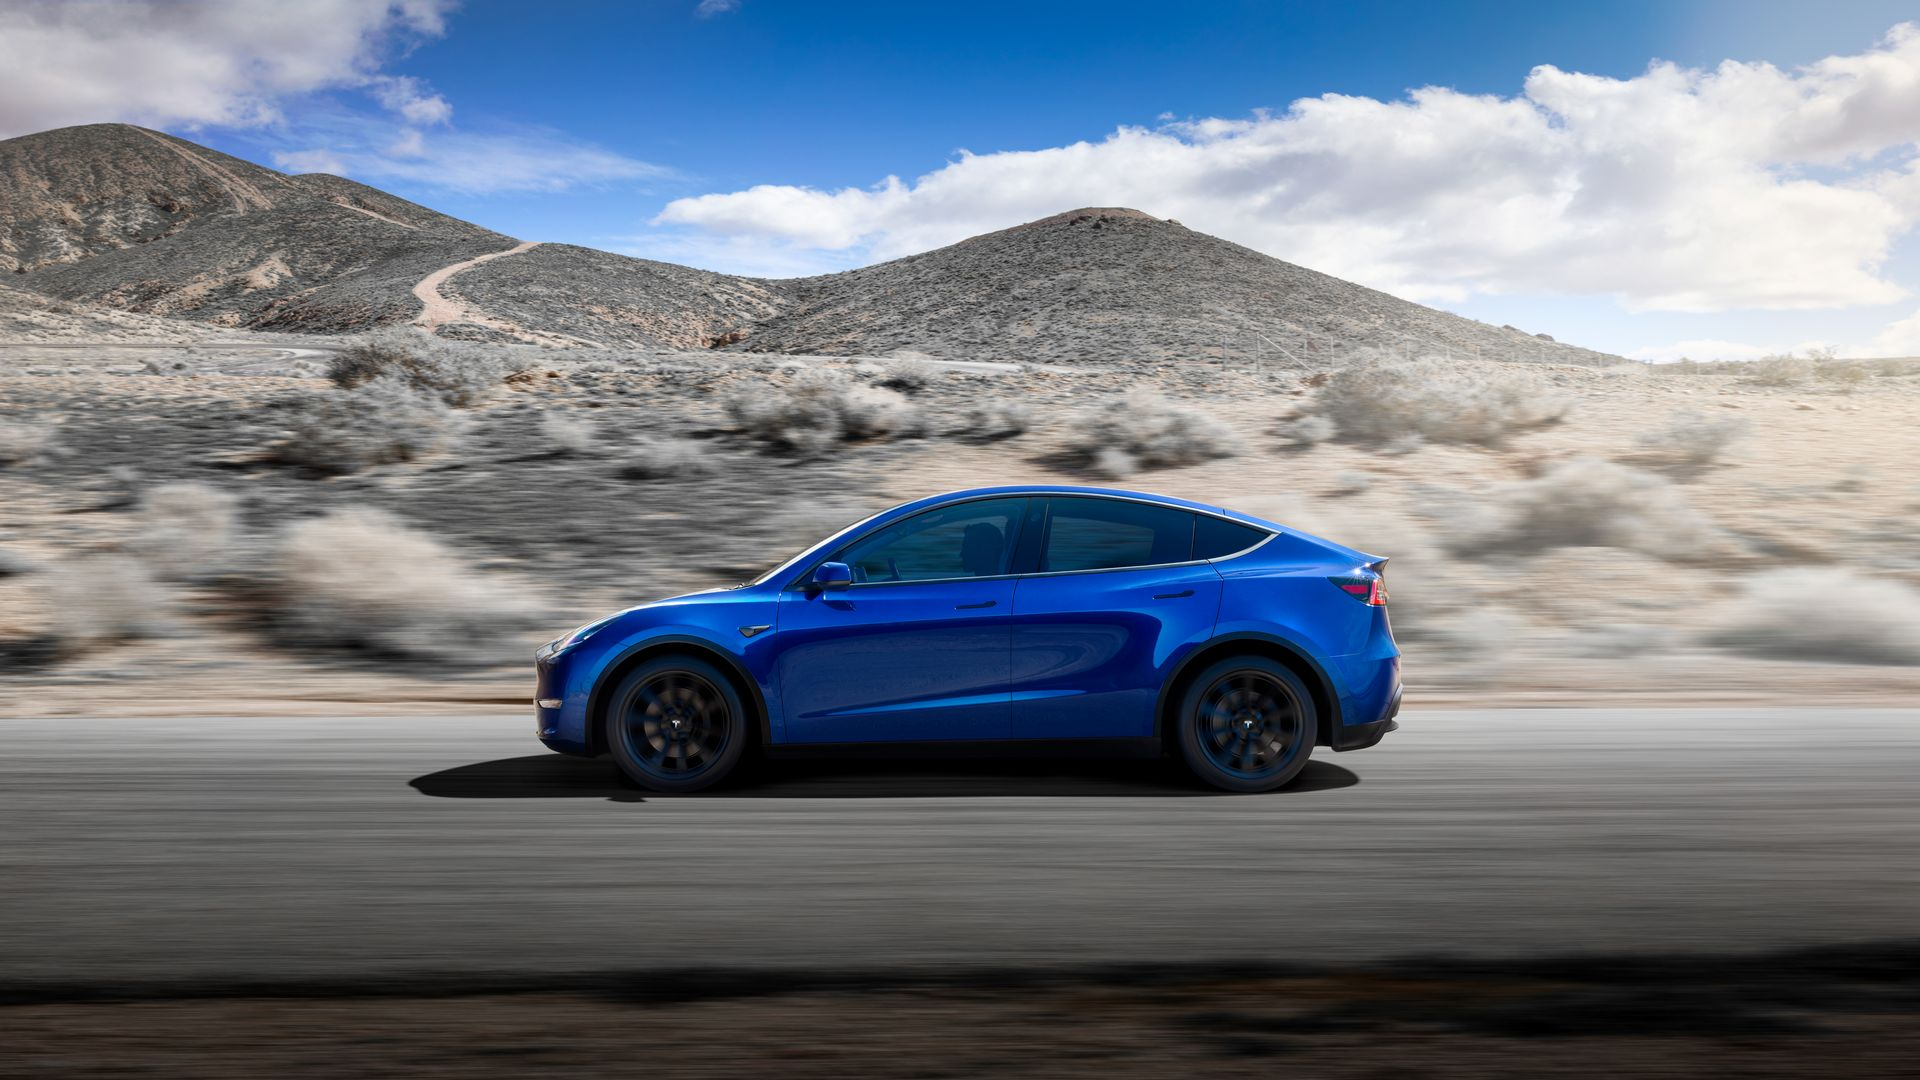 Tesla Model Y: Elon Musk unveils long-awaited £30,000 electric SUV